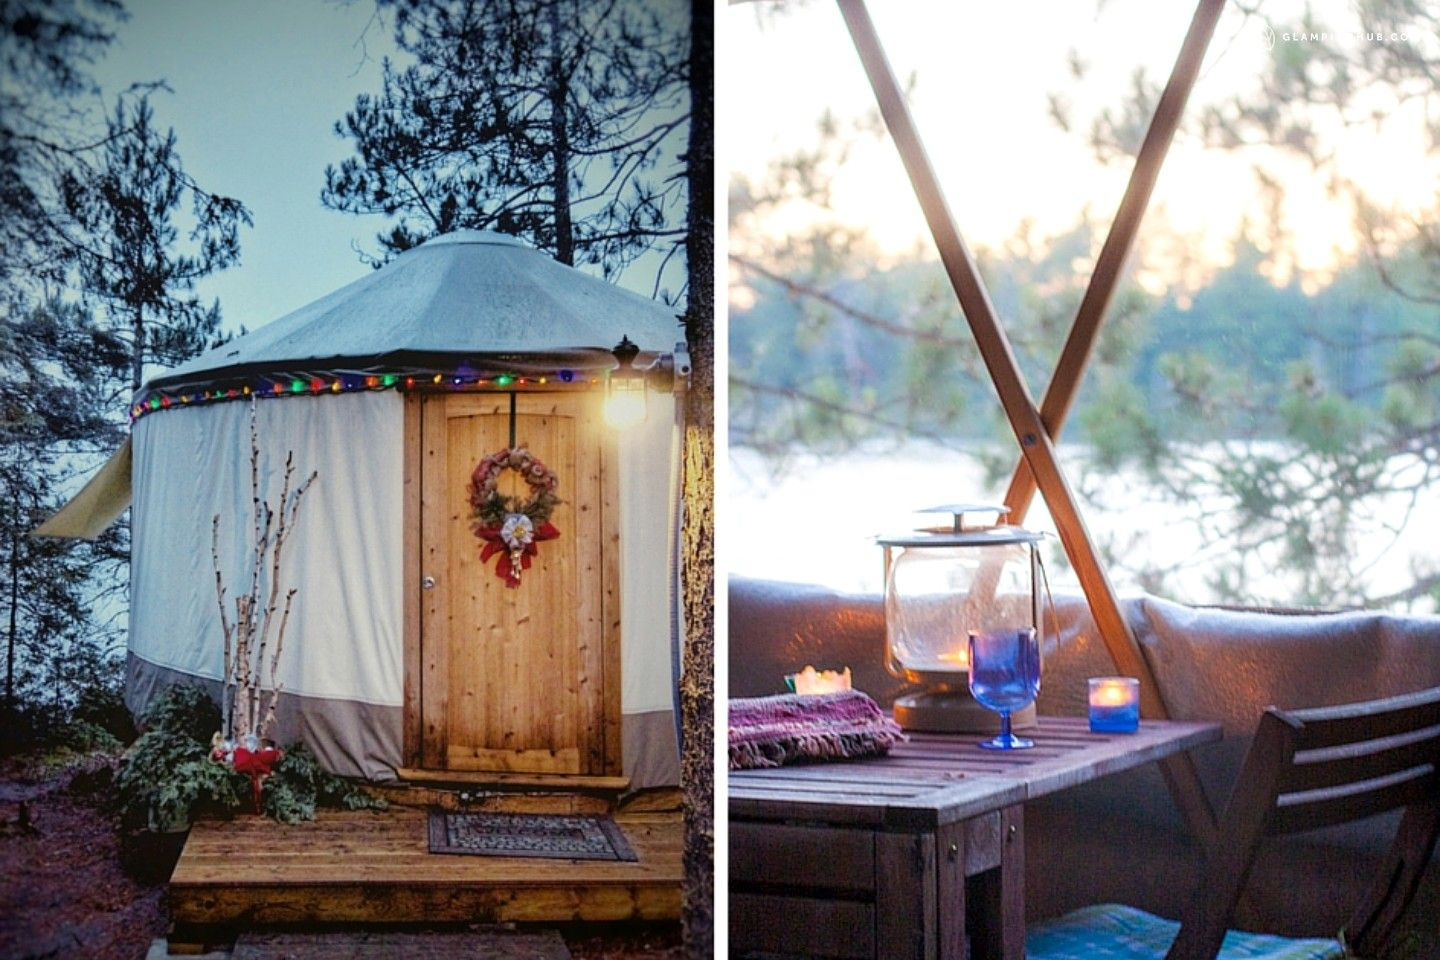 Pin On Travel Accommodations Tips on booking yurts in ontario. pin on travel accommodations